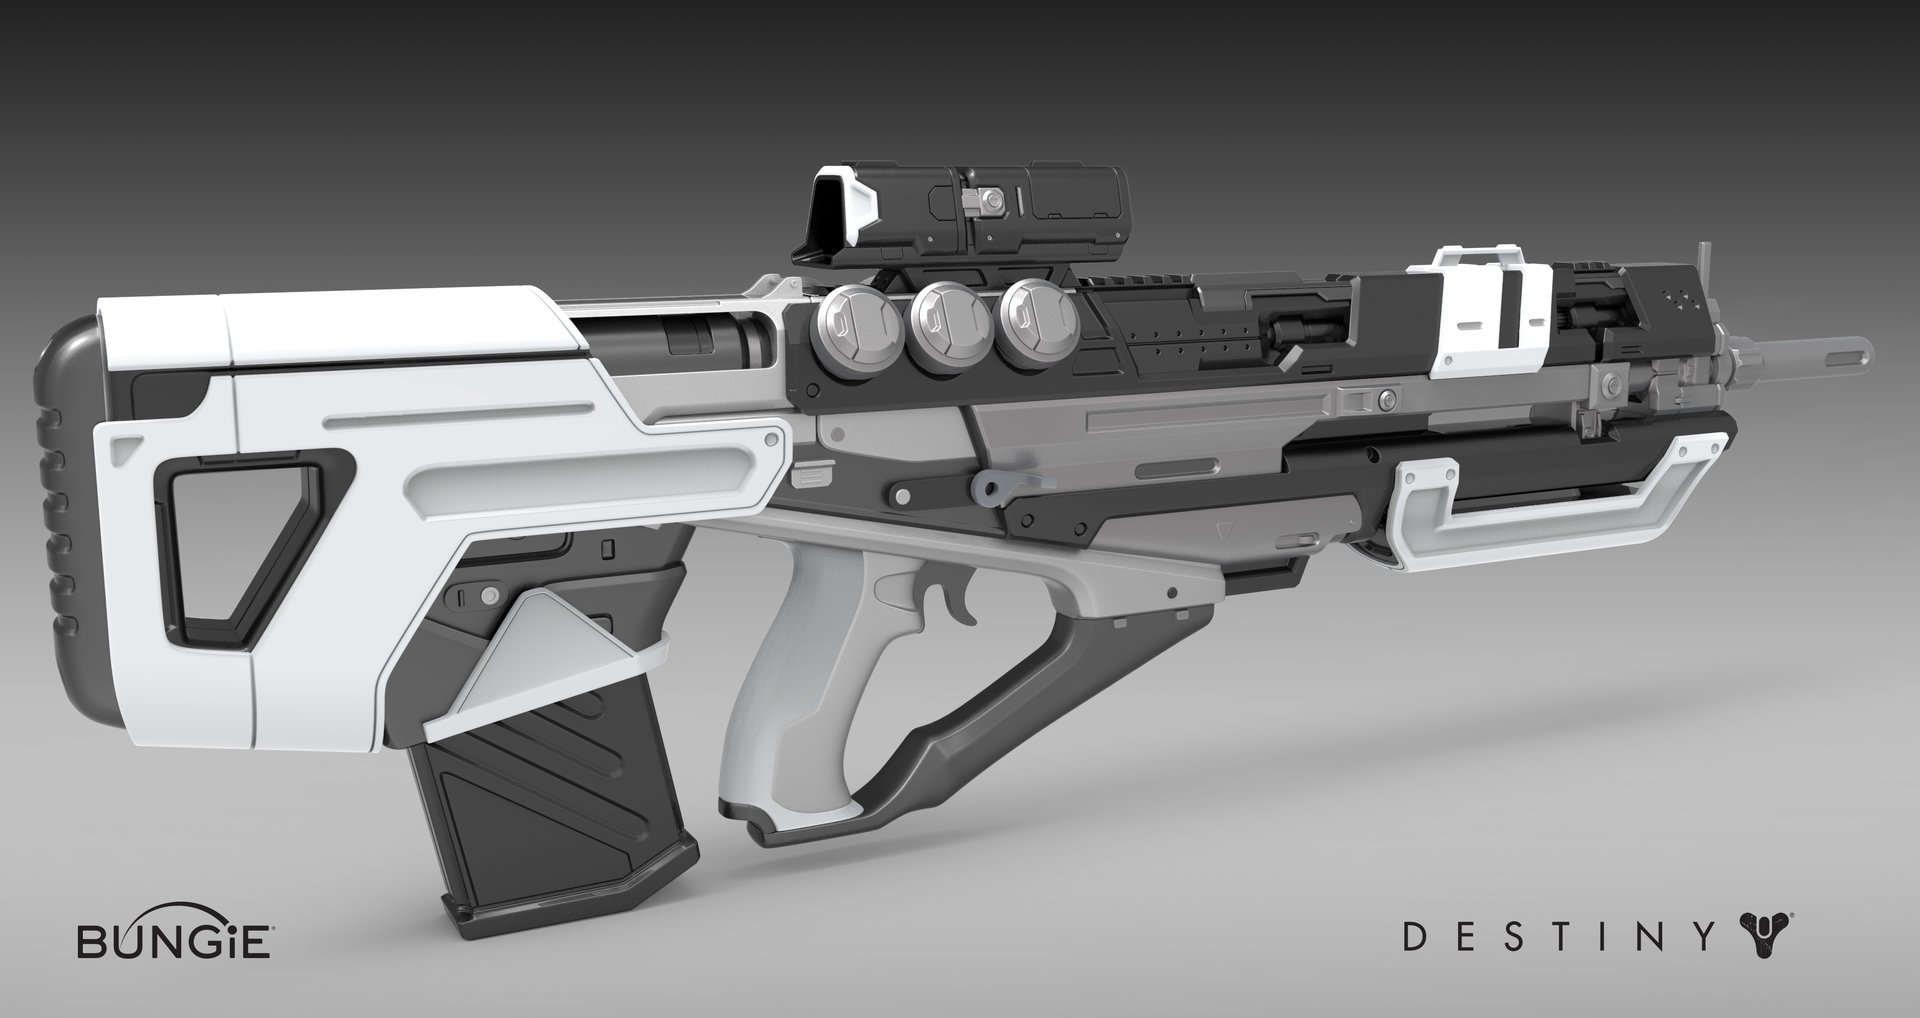 Pulse Rifle - Destiny Walkthrough